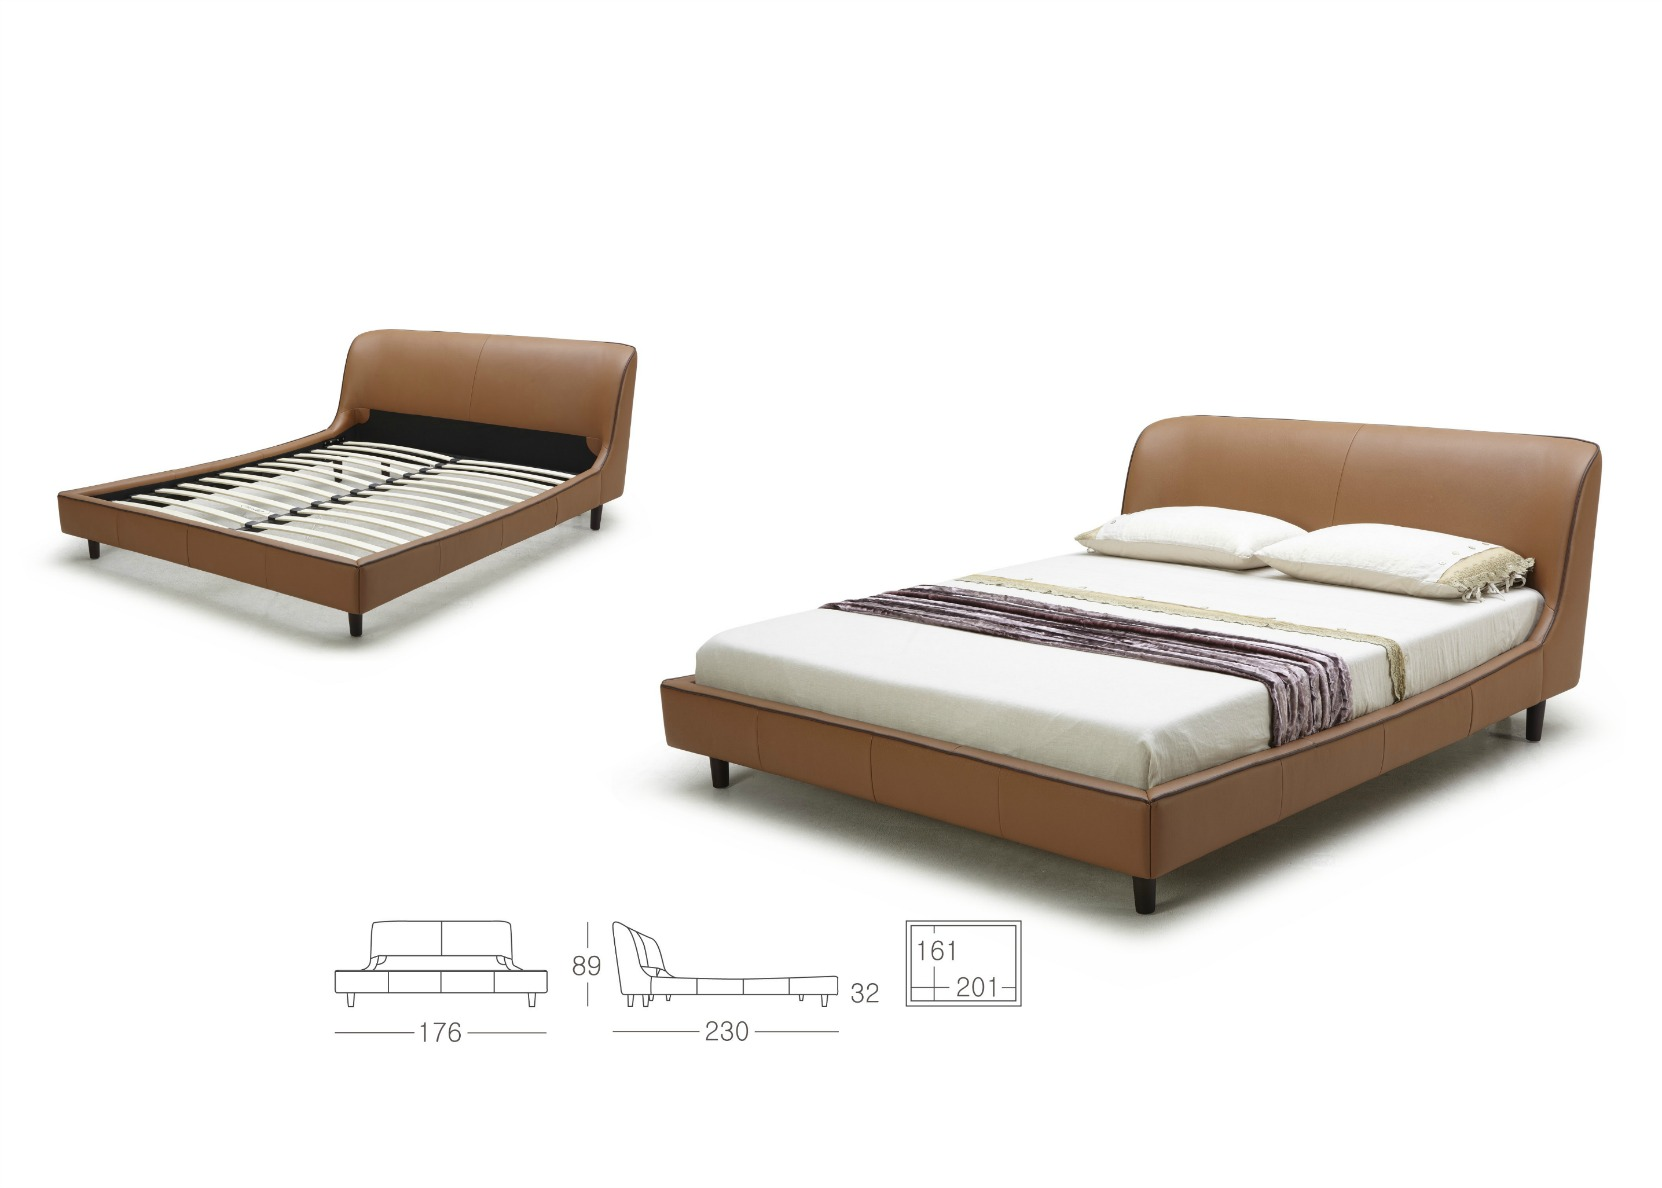 King Size Bed In Tan Leather Upholstery Not Just Brown